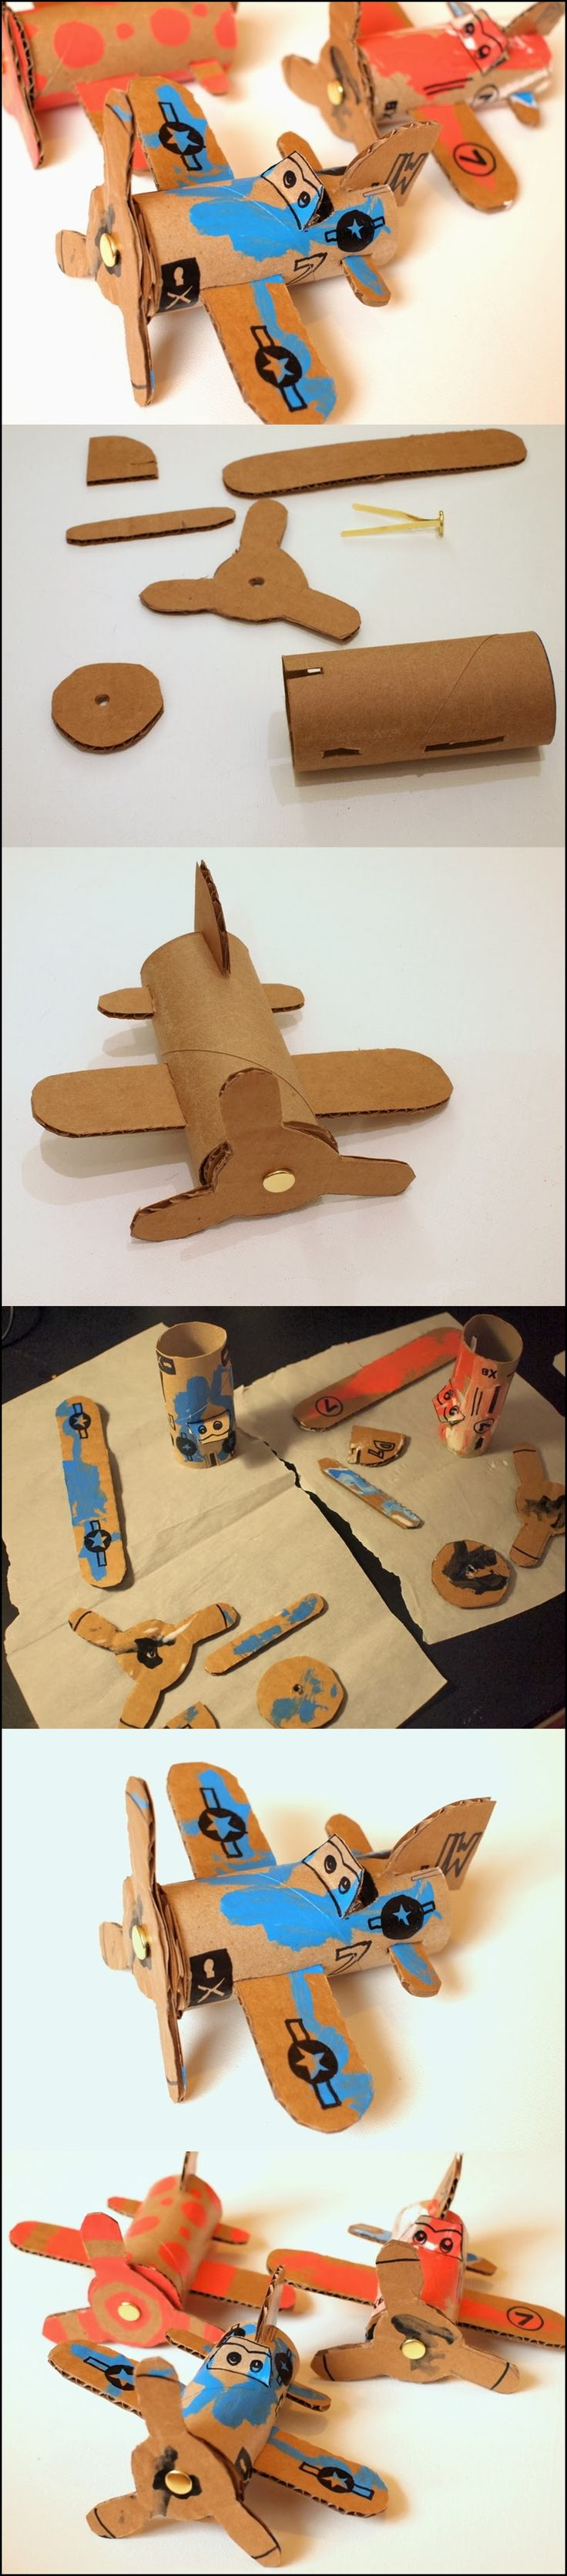 http://wonderfuldiy.com/wonderful-diy-toilet-roll-airplanes/